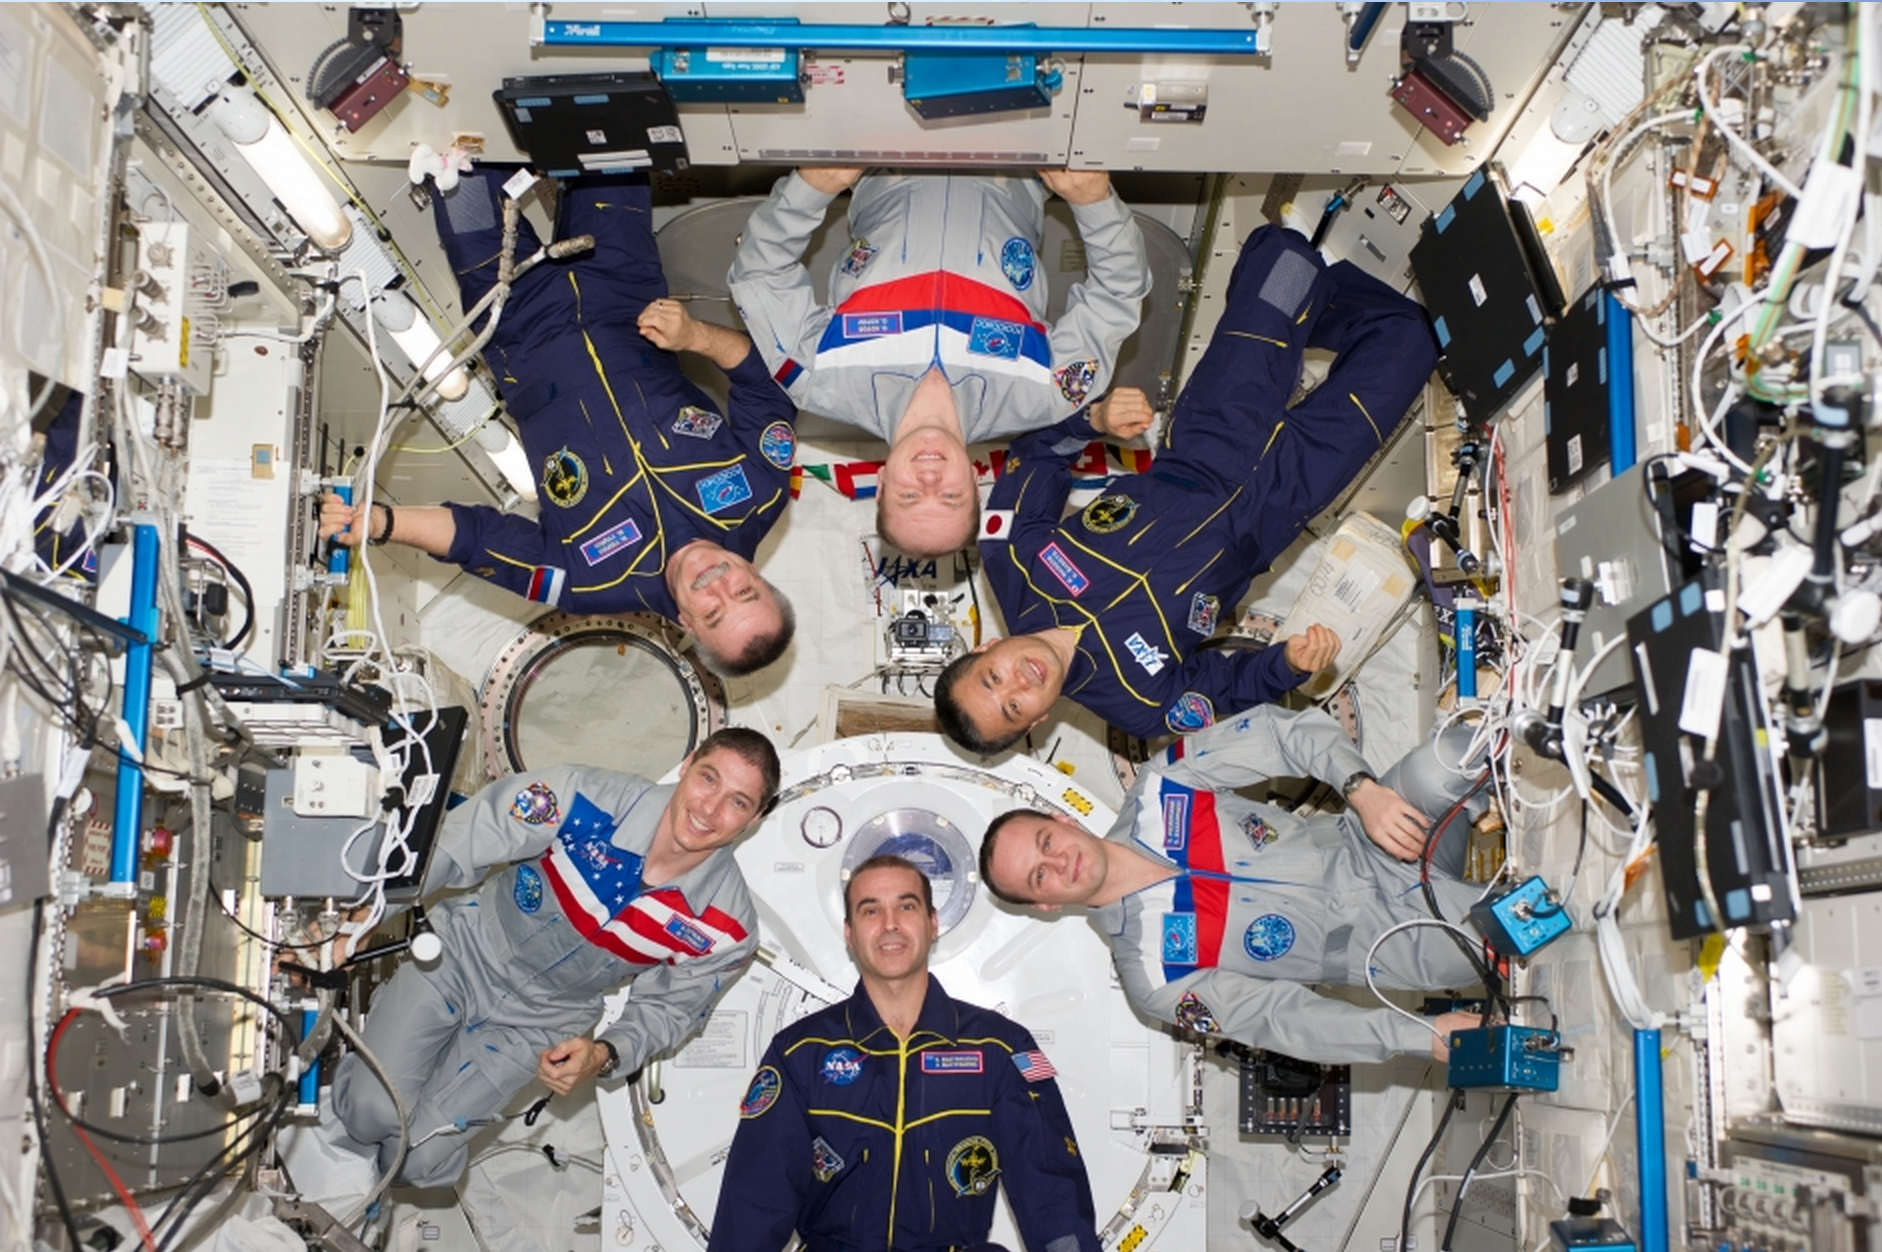 The expedition 38 crew aboard the International Space Station. Clockwise from top center: Russian cosmonaut Oleg Kotov, Japan Aerospace Exploration Agency astronaut Koichi Wakata, Russian cosmonaut Sergey Ryazanskiy, NASA astronauts Rick Mastracchio and Mike Hopkins and Russian cosmonaut Mikhail Tyurin. Photo courtesy of NASA.